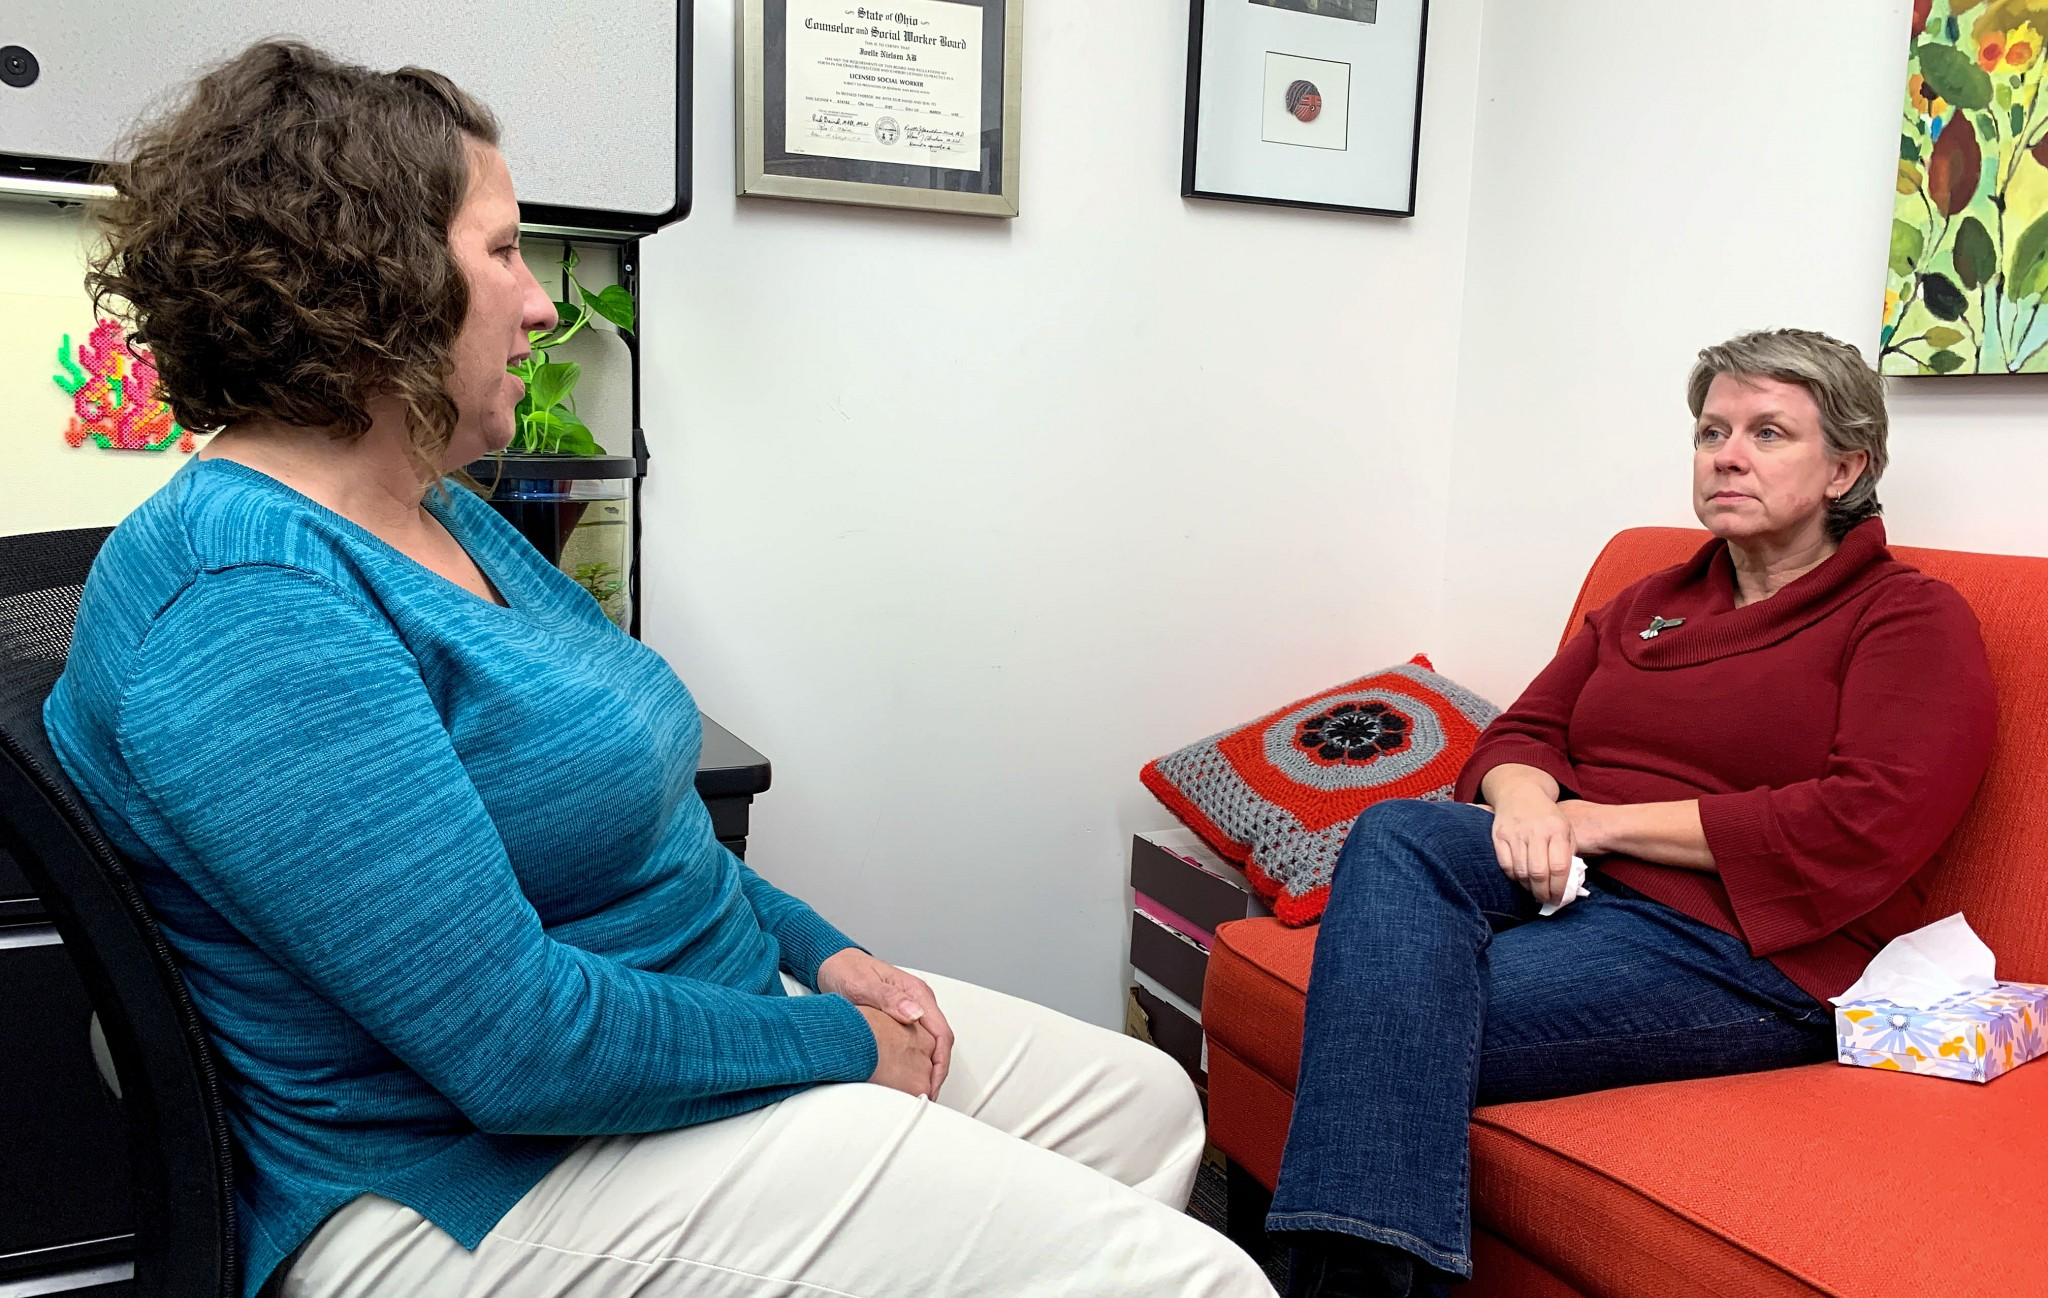 Joelle Nielsen speaks with a pet owner at The Ohio State University Veterinary Medical Center. She says that, while social workers are emerging in the veterinary field, more are needed to help pet owners through the loss of a beloved animal. (Photo courtesy of The Ohio State University Veterinary Medical Center)